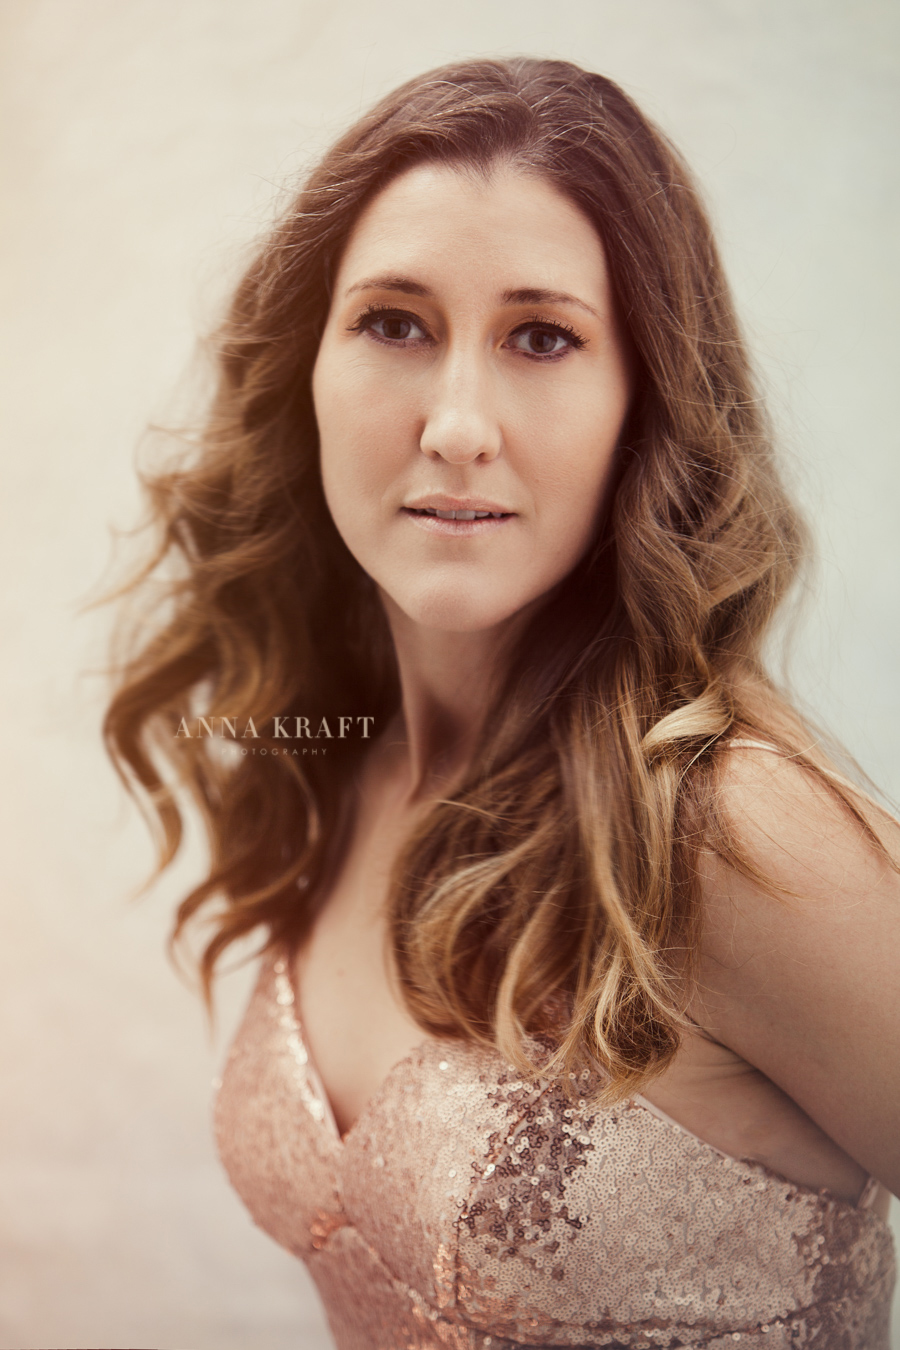 anna_kraft_photography_georgetown_square_studio_motherhood_beauty_portrait-22.jpg